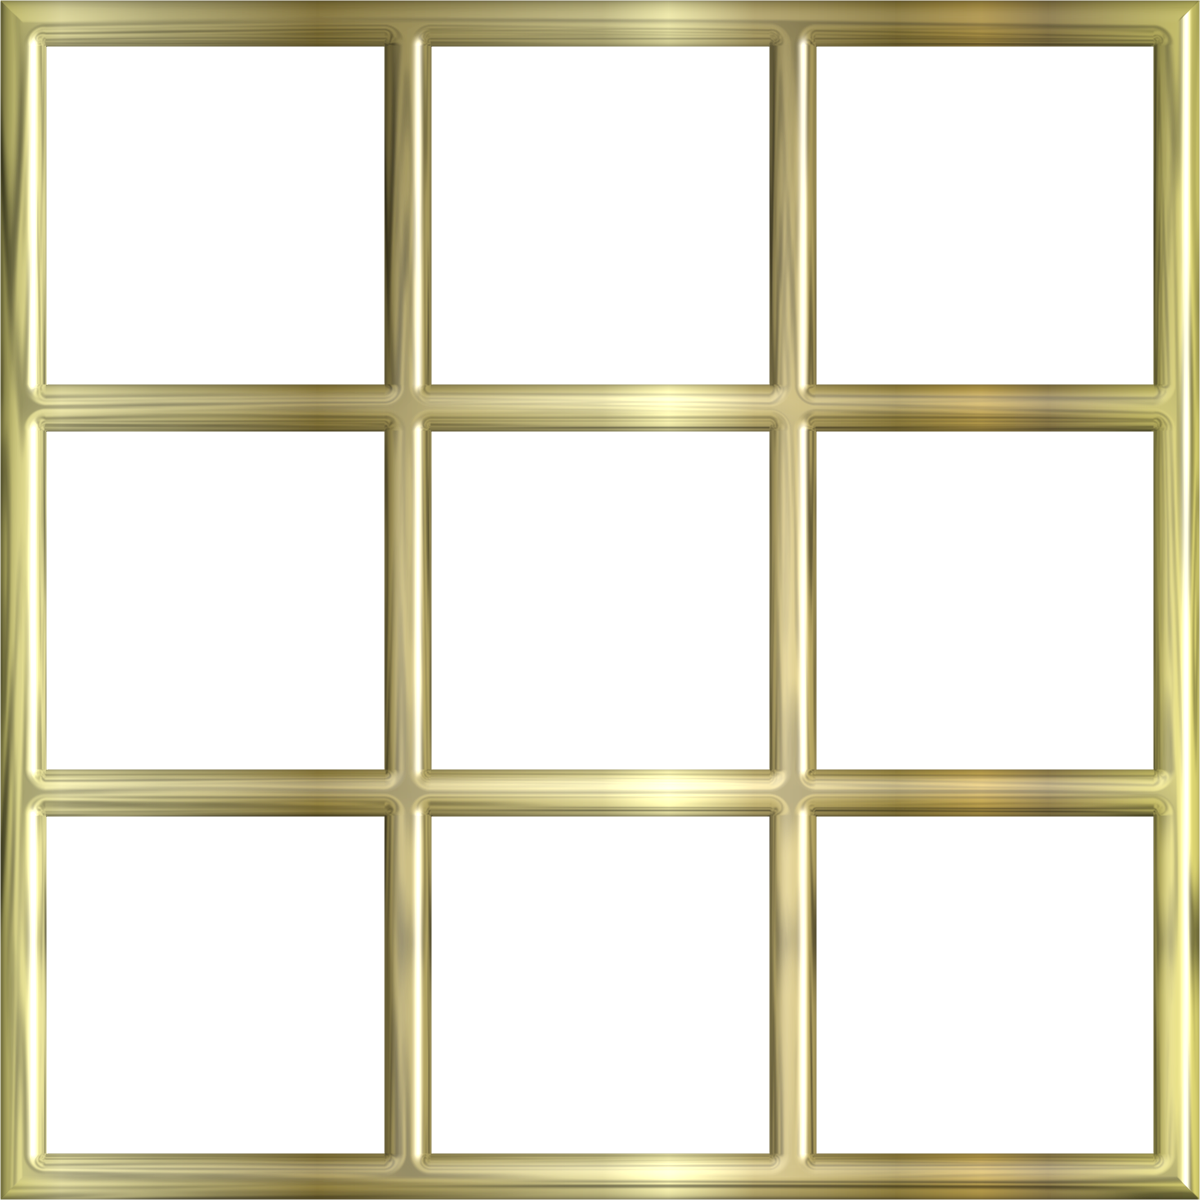 Gold frame border window free images at for Window design clipart